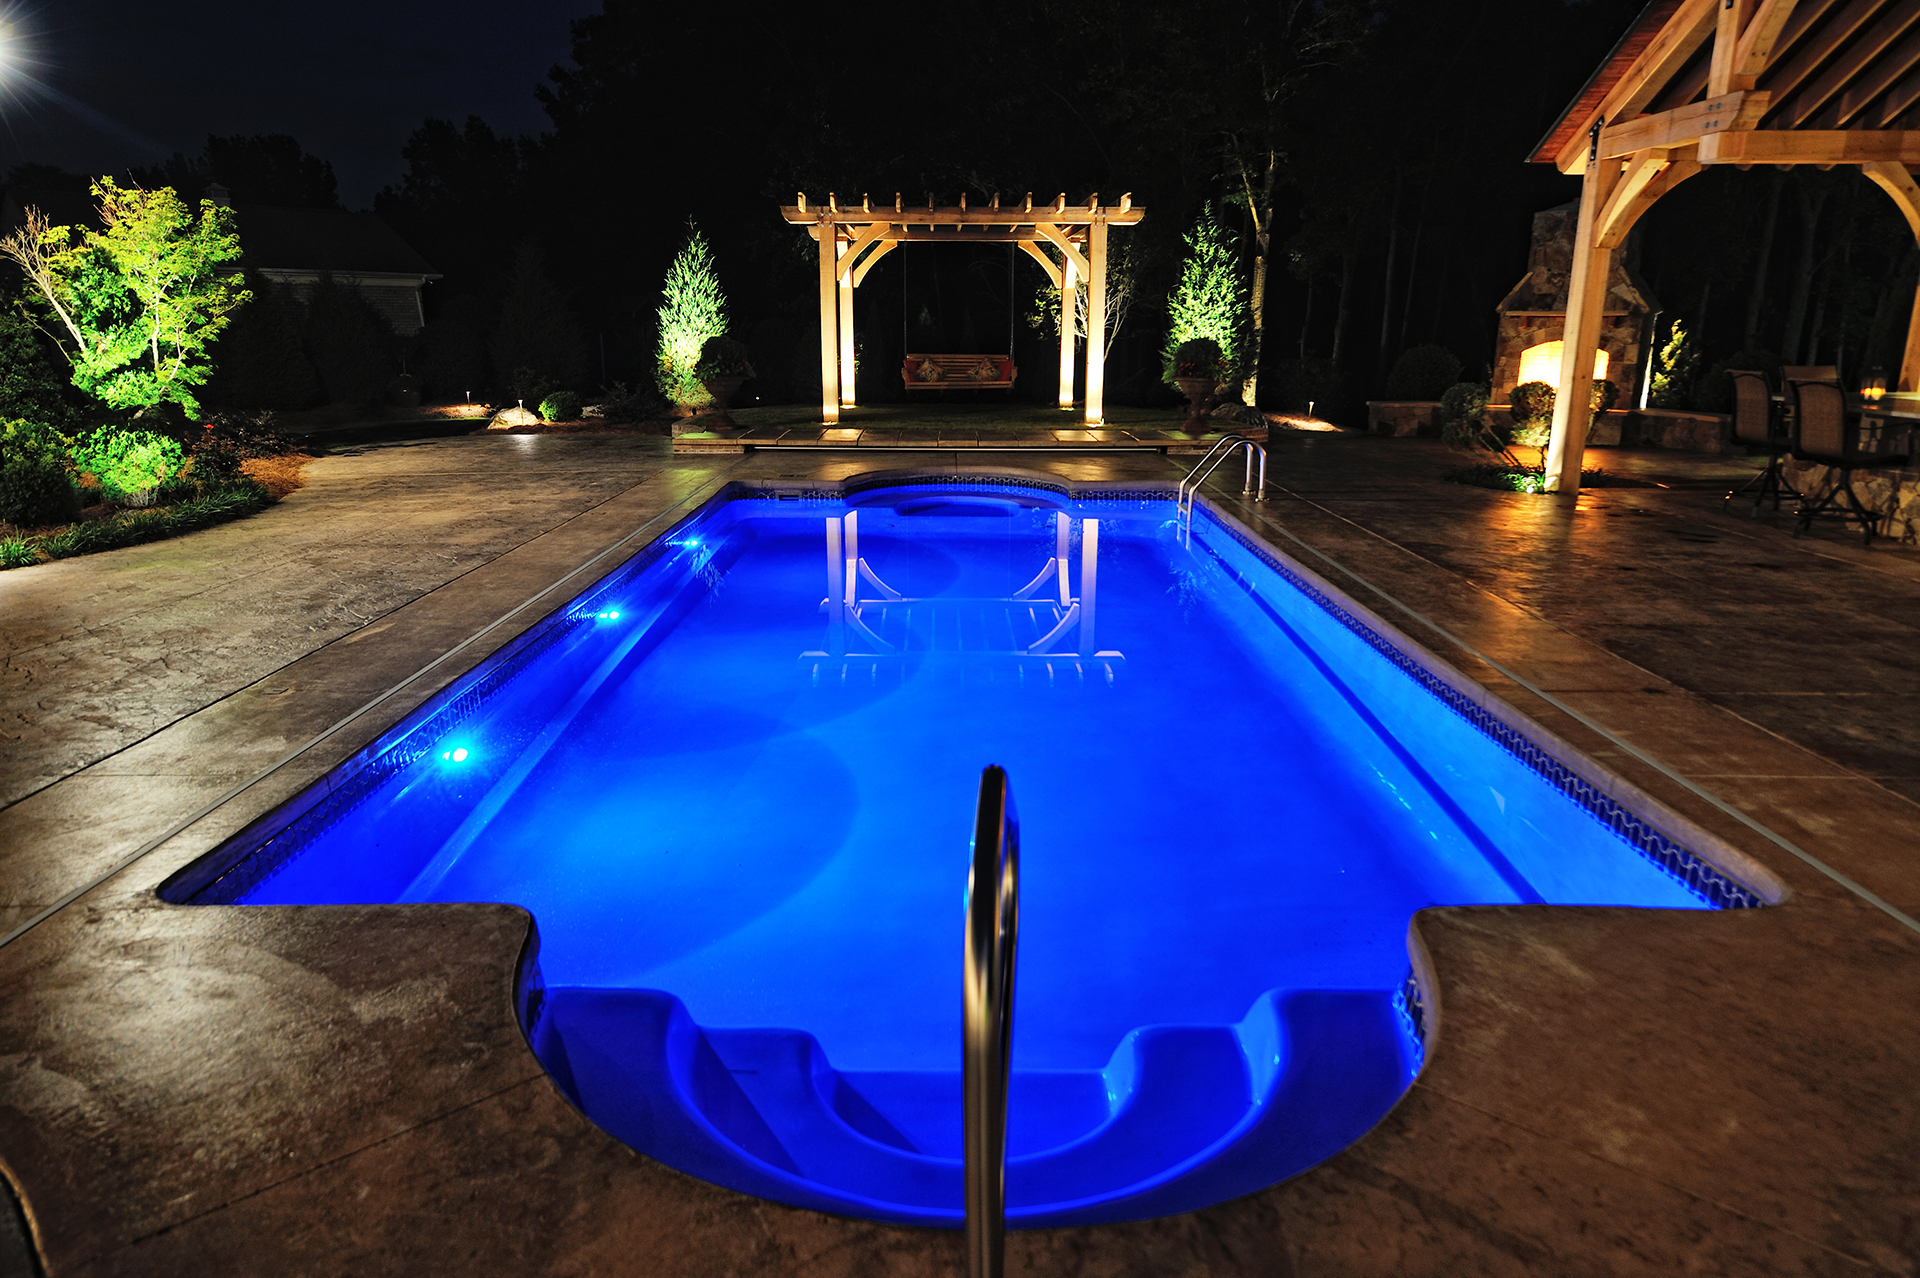 Top Upgrades For Inground Pools